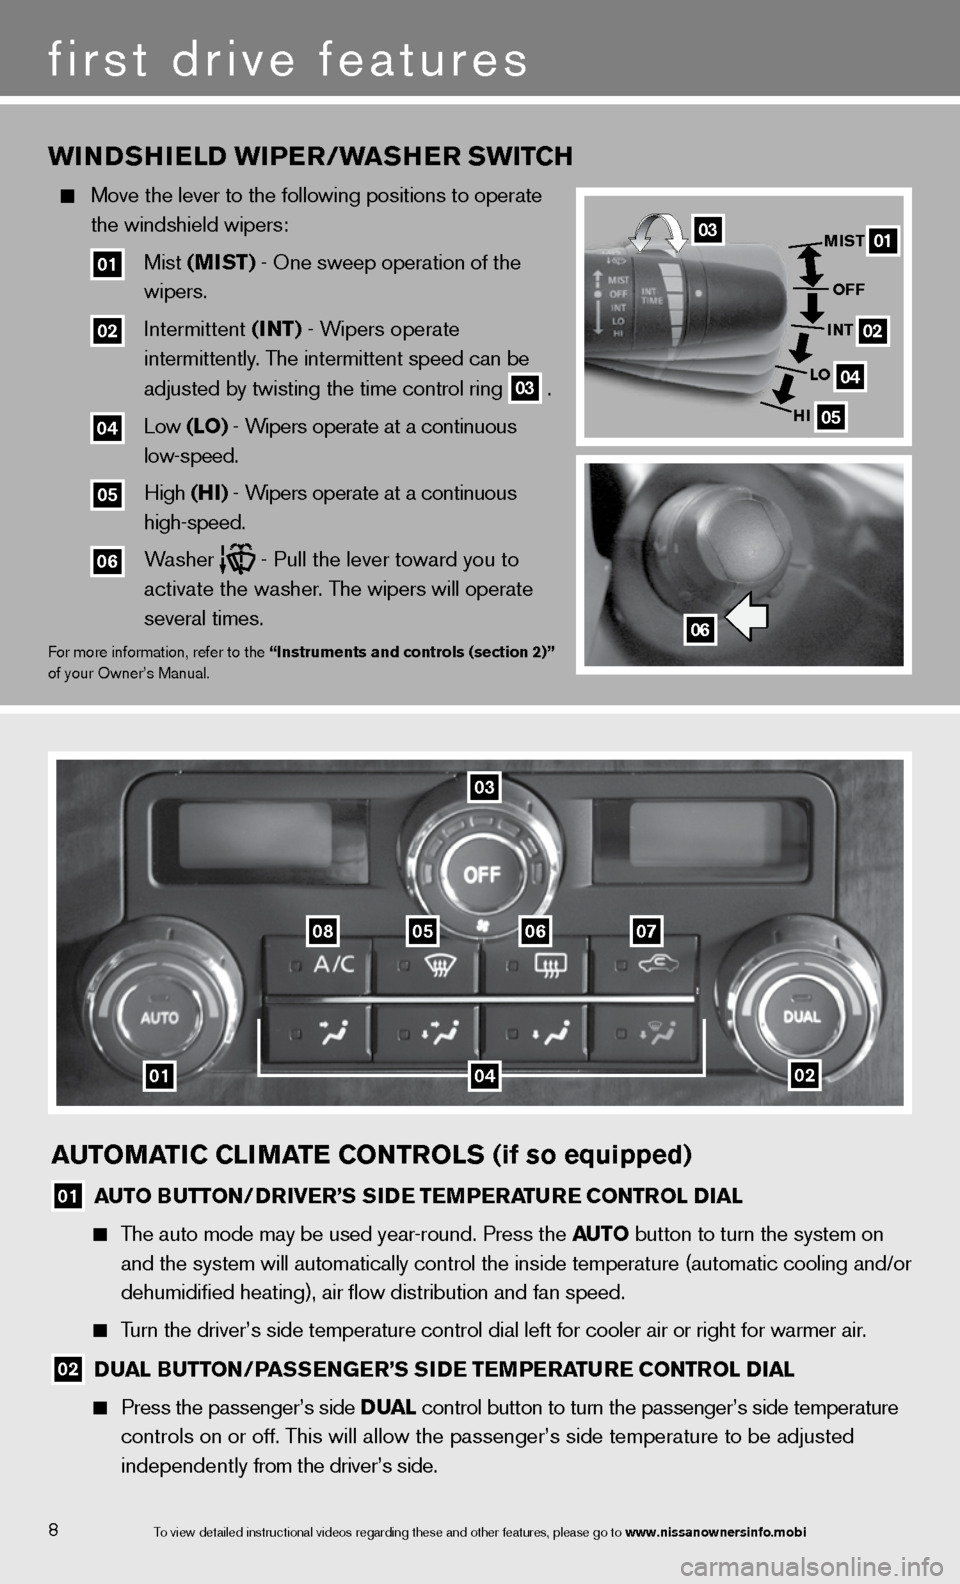 NISSAN TITAN 2013 1.G Quick Reference Guide AUTOMATIC CLIMATE CONTROLS (if so equipped) 01 AUTO BUTTON/DRIvER'S SIDE TEMPERATURE CONTROL DIAL      The auto mode may be used year-round. Press the AUTO  button to turn the system on         and